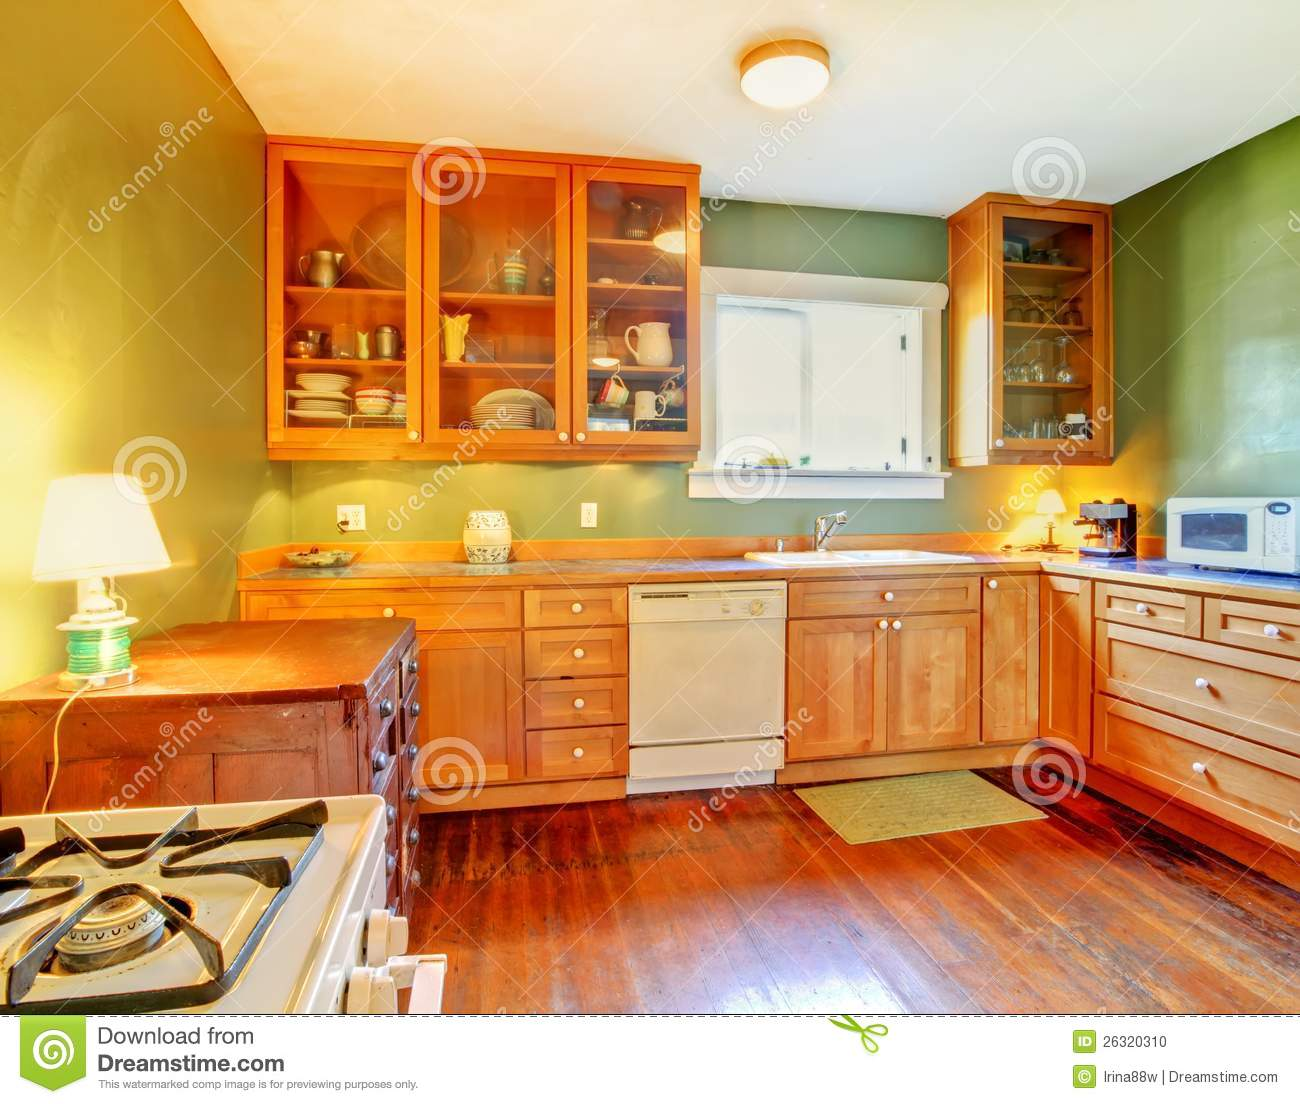 Green Kitchen With Wood Cabinets Stock Photo Image Of